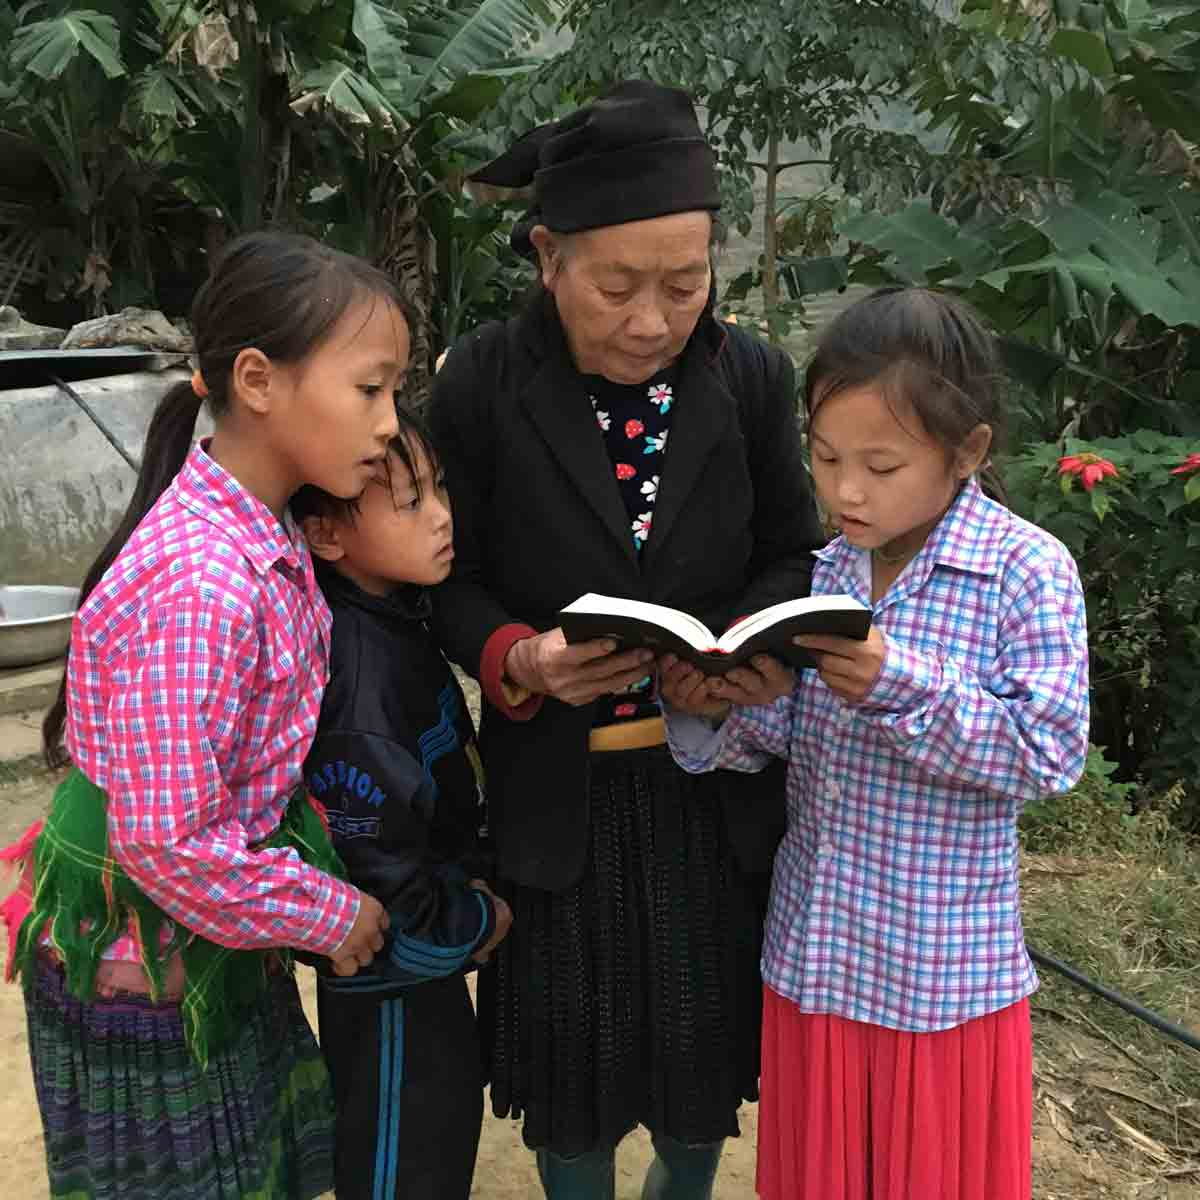 Chau was kicked out of her village while away on a visit to her daughter.